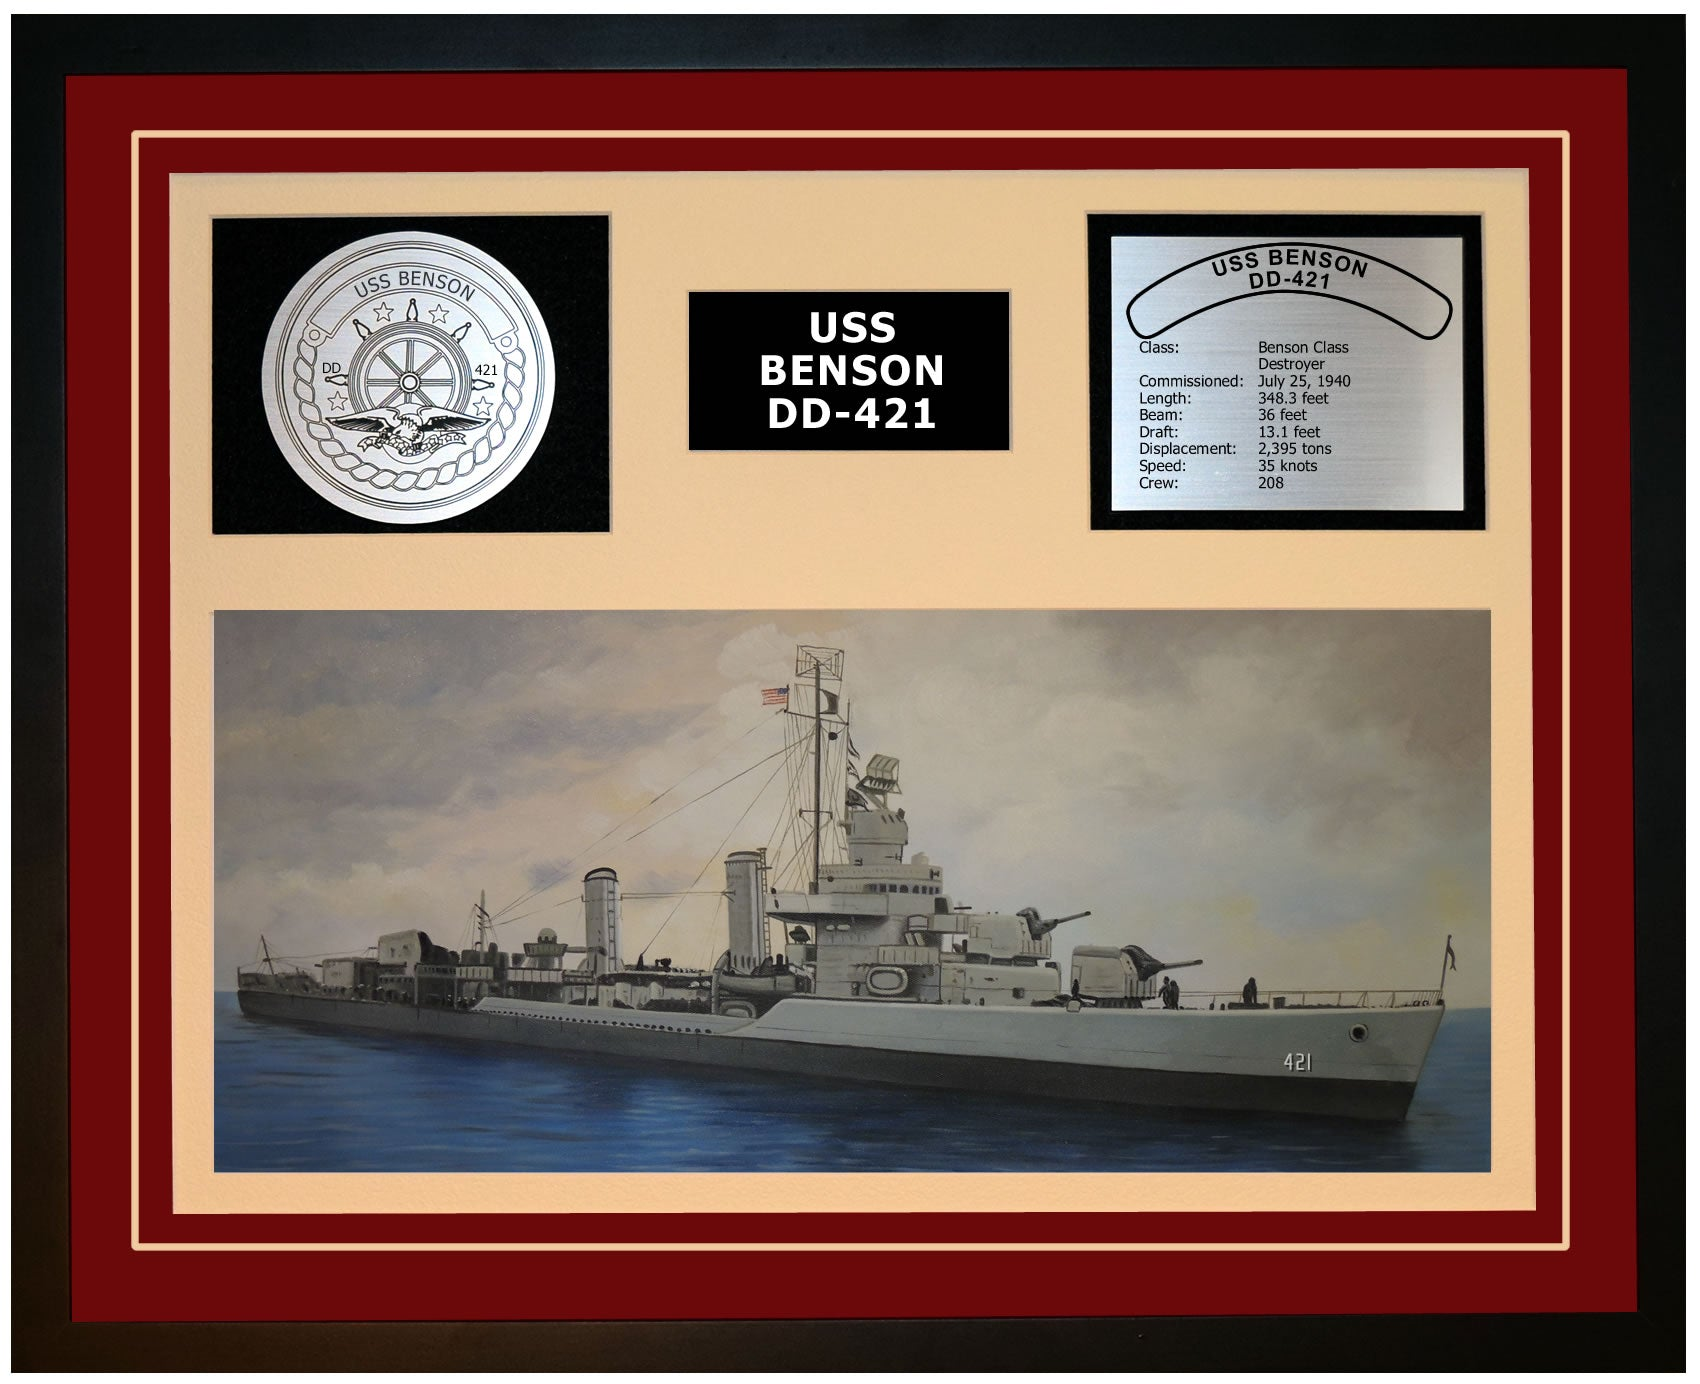 USS BENSON DD-421 Framed Navy Ship Display Burgundy